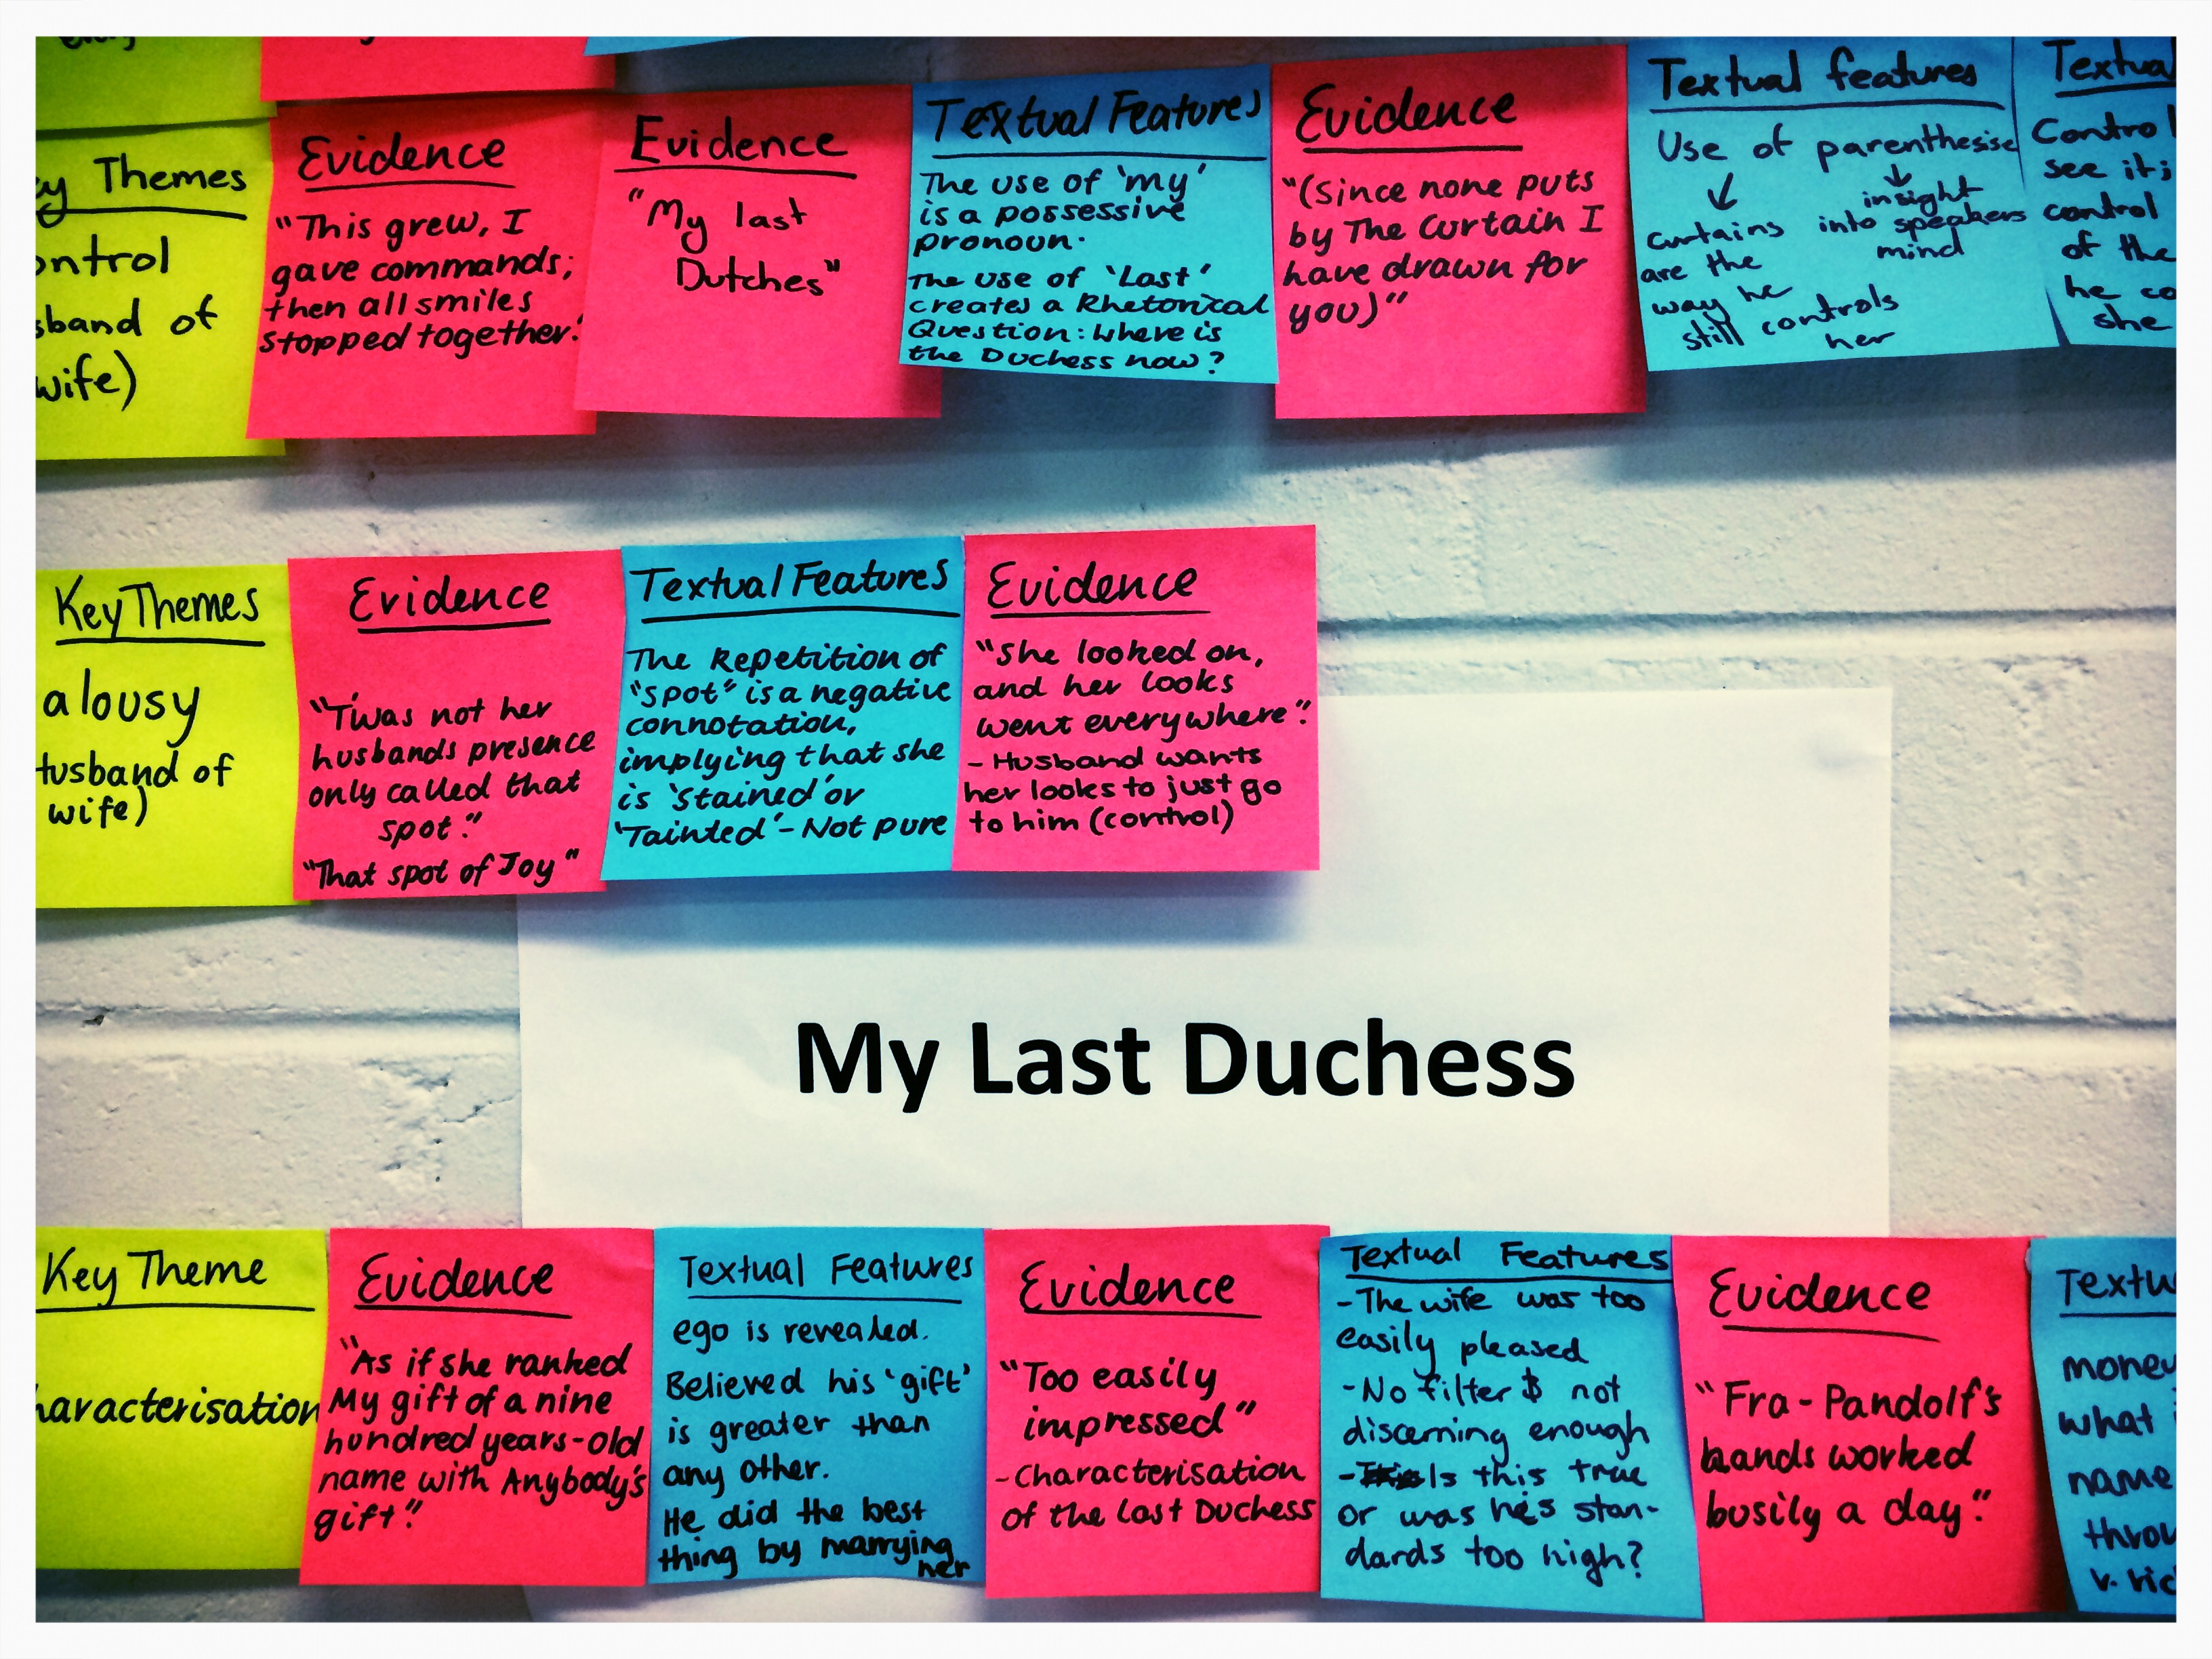 dramatic monologue my last duchess essay More about robert browning's my last duchess essay purposes of the dramatic monologue in my last duchess by robert browning 920 words | 4 pages + popular essays.